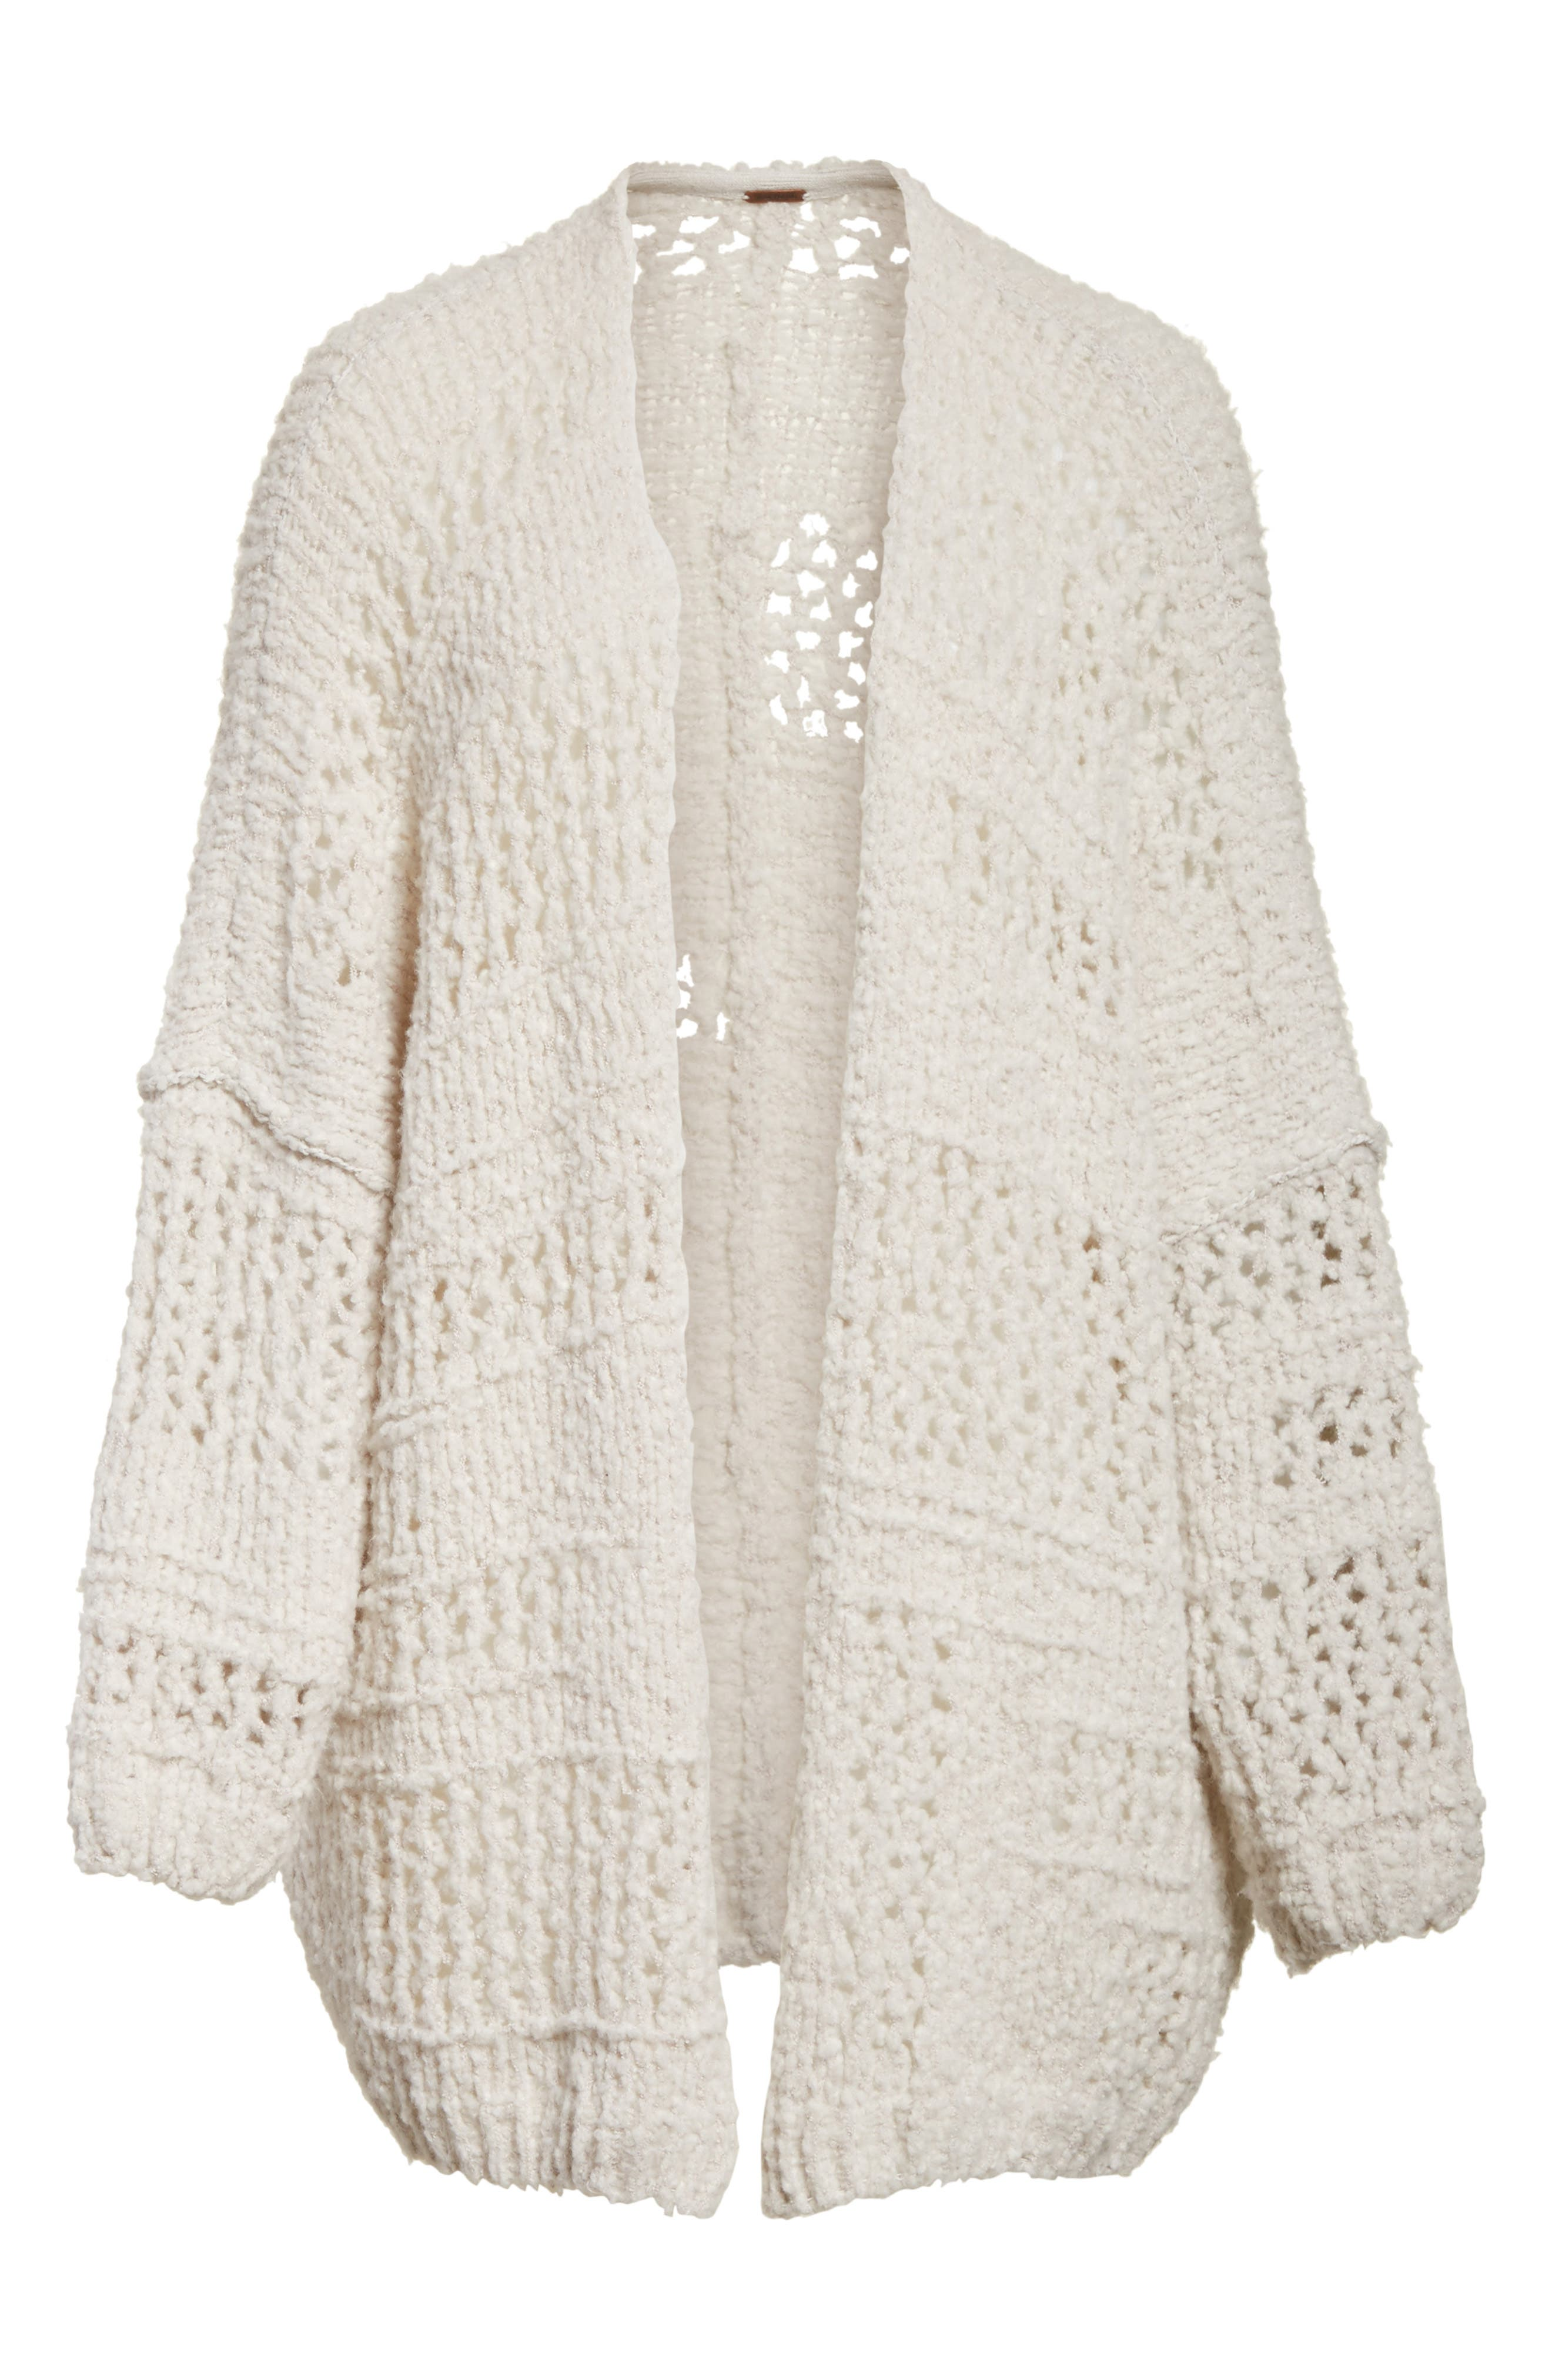 FREE PEOPLE, Saturday Morning Cardigan, Alternate thumbnail 6, color, 903